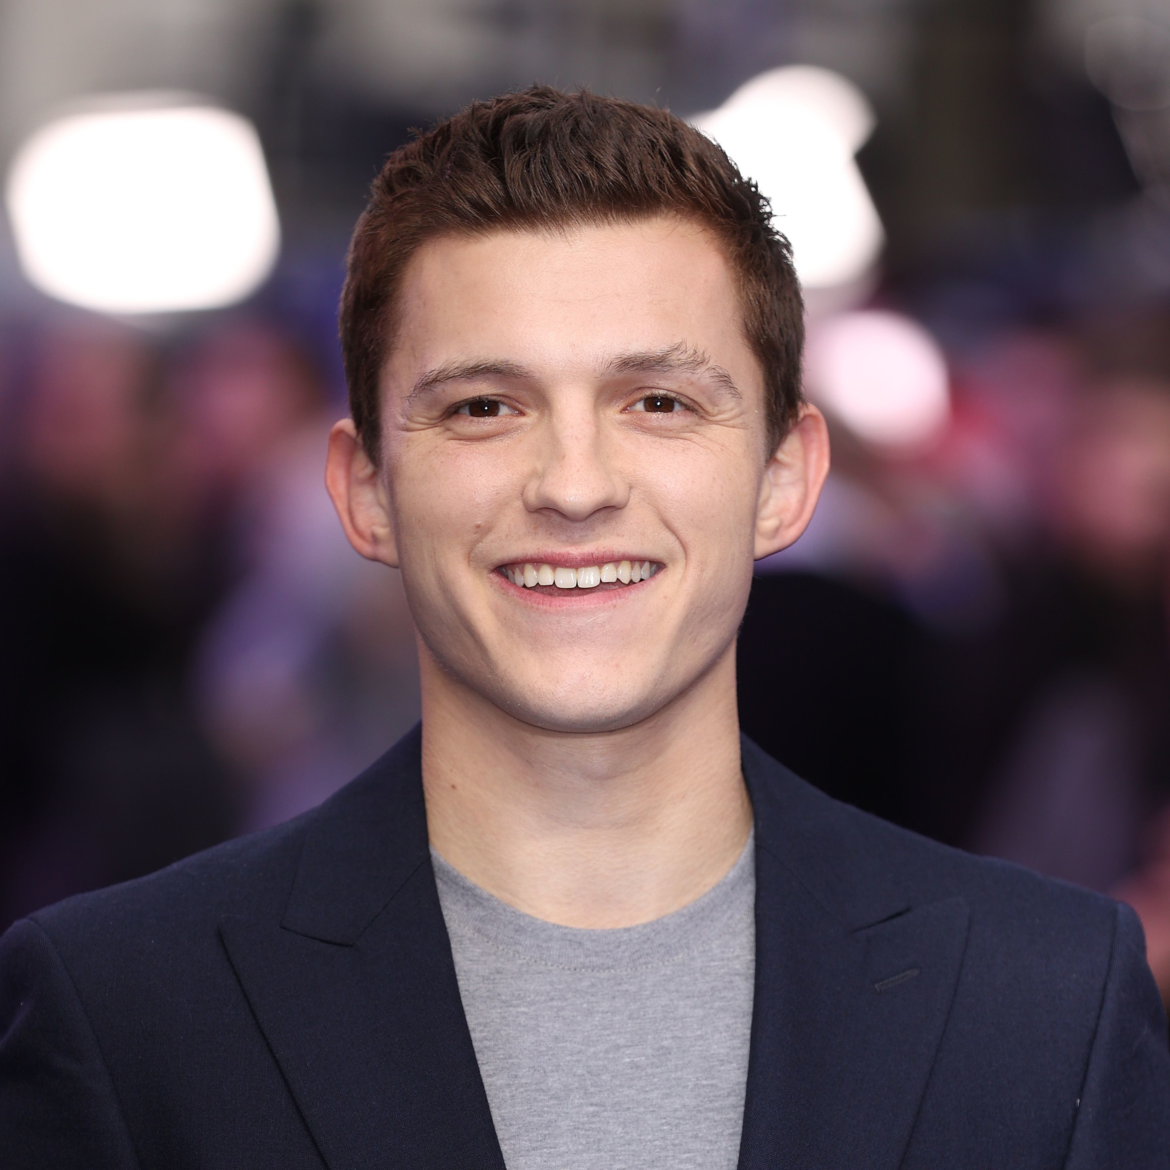 Tom Holland Is Reportedly Single Again